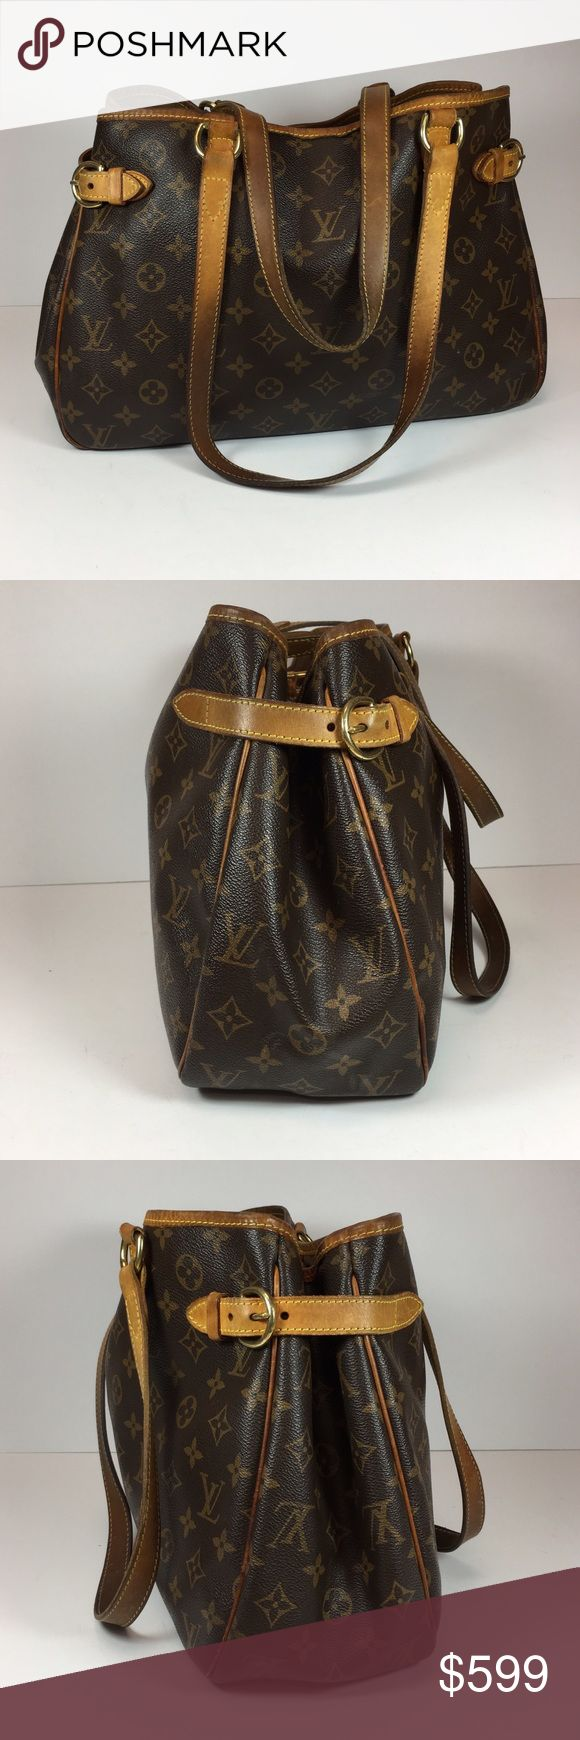 """Louis Vuitton Monogram Batignolles Horizontal Tote Brown and tan monogram coated canvas Louis Vuitton Batignolles Horizontal bag with brass hardware, tan vachetta leather trim, dual flat shoulder straps, buckle expansions at sides, brown canvas lining, dual pockets at interior wall; one with zip closure and clasp closures at top. Date code is worn, but part can be made out. Overall very good used condition.  Height: 10.5"""" Depth: 4.75"""" Shoulder Strap Drop: 9"""" Width: 14"""" Louis Vuitton Bags…"""